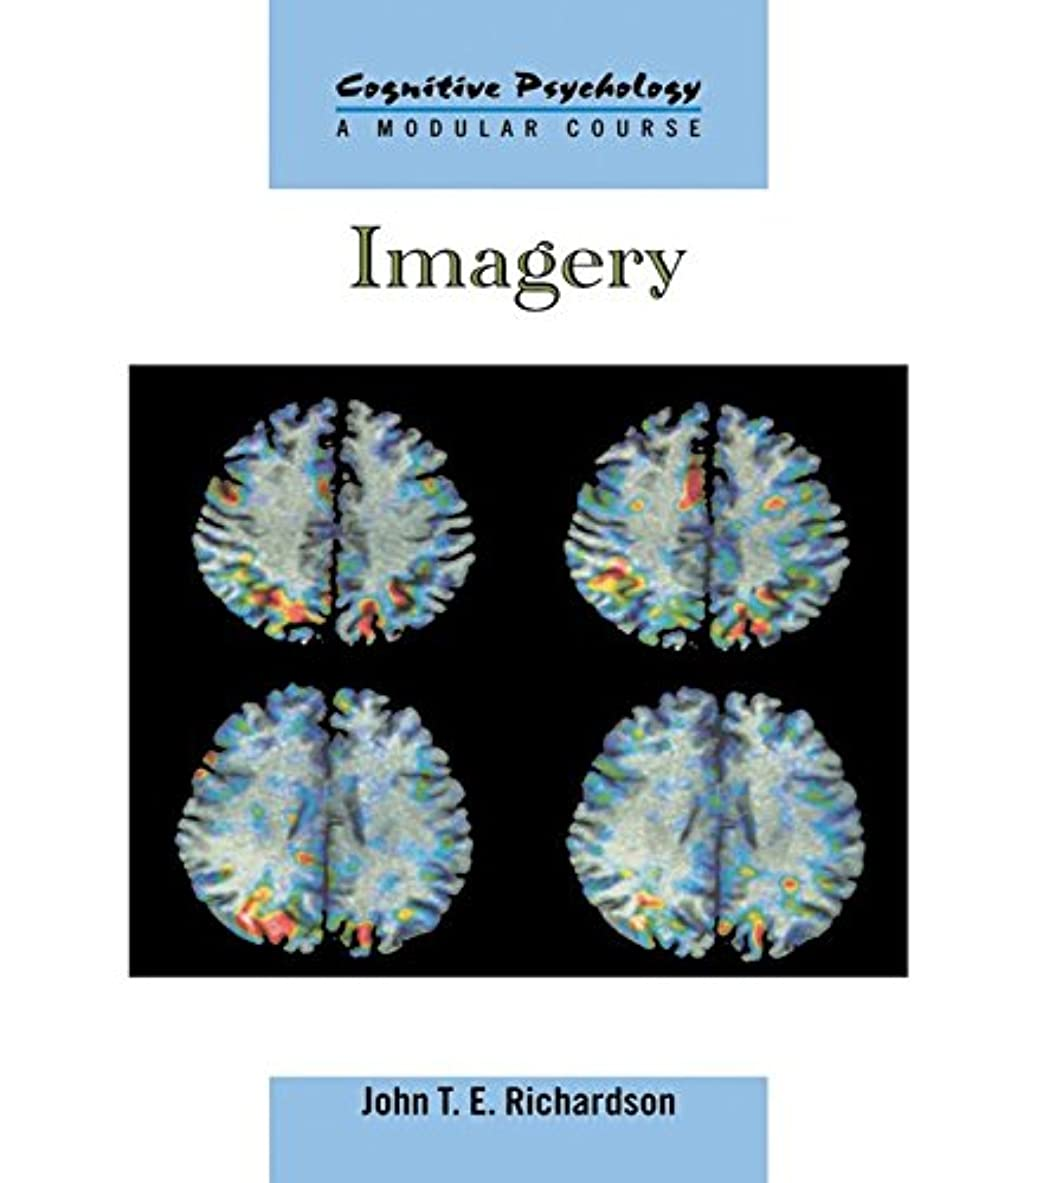 受け継ぐ提案する悪行Imagery (Cognitive Psychology, Modular Course) (English Edition)